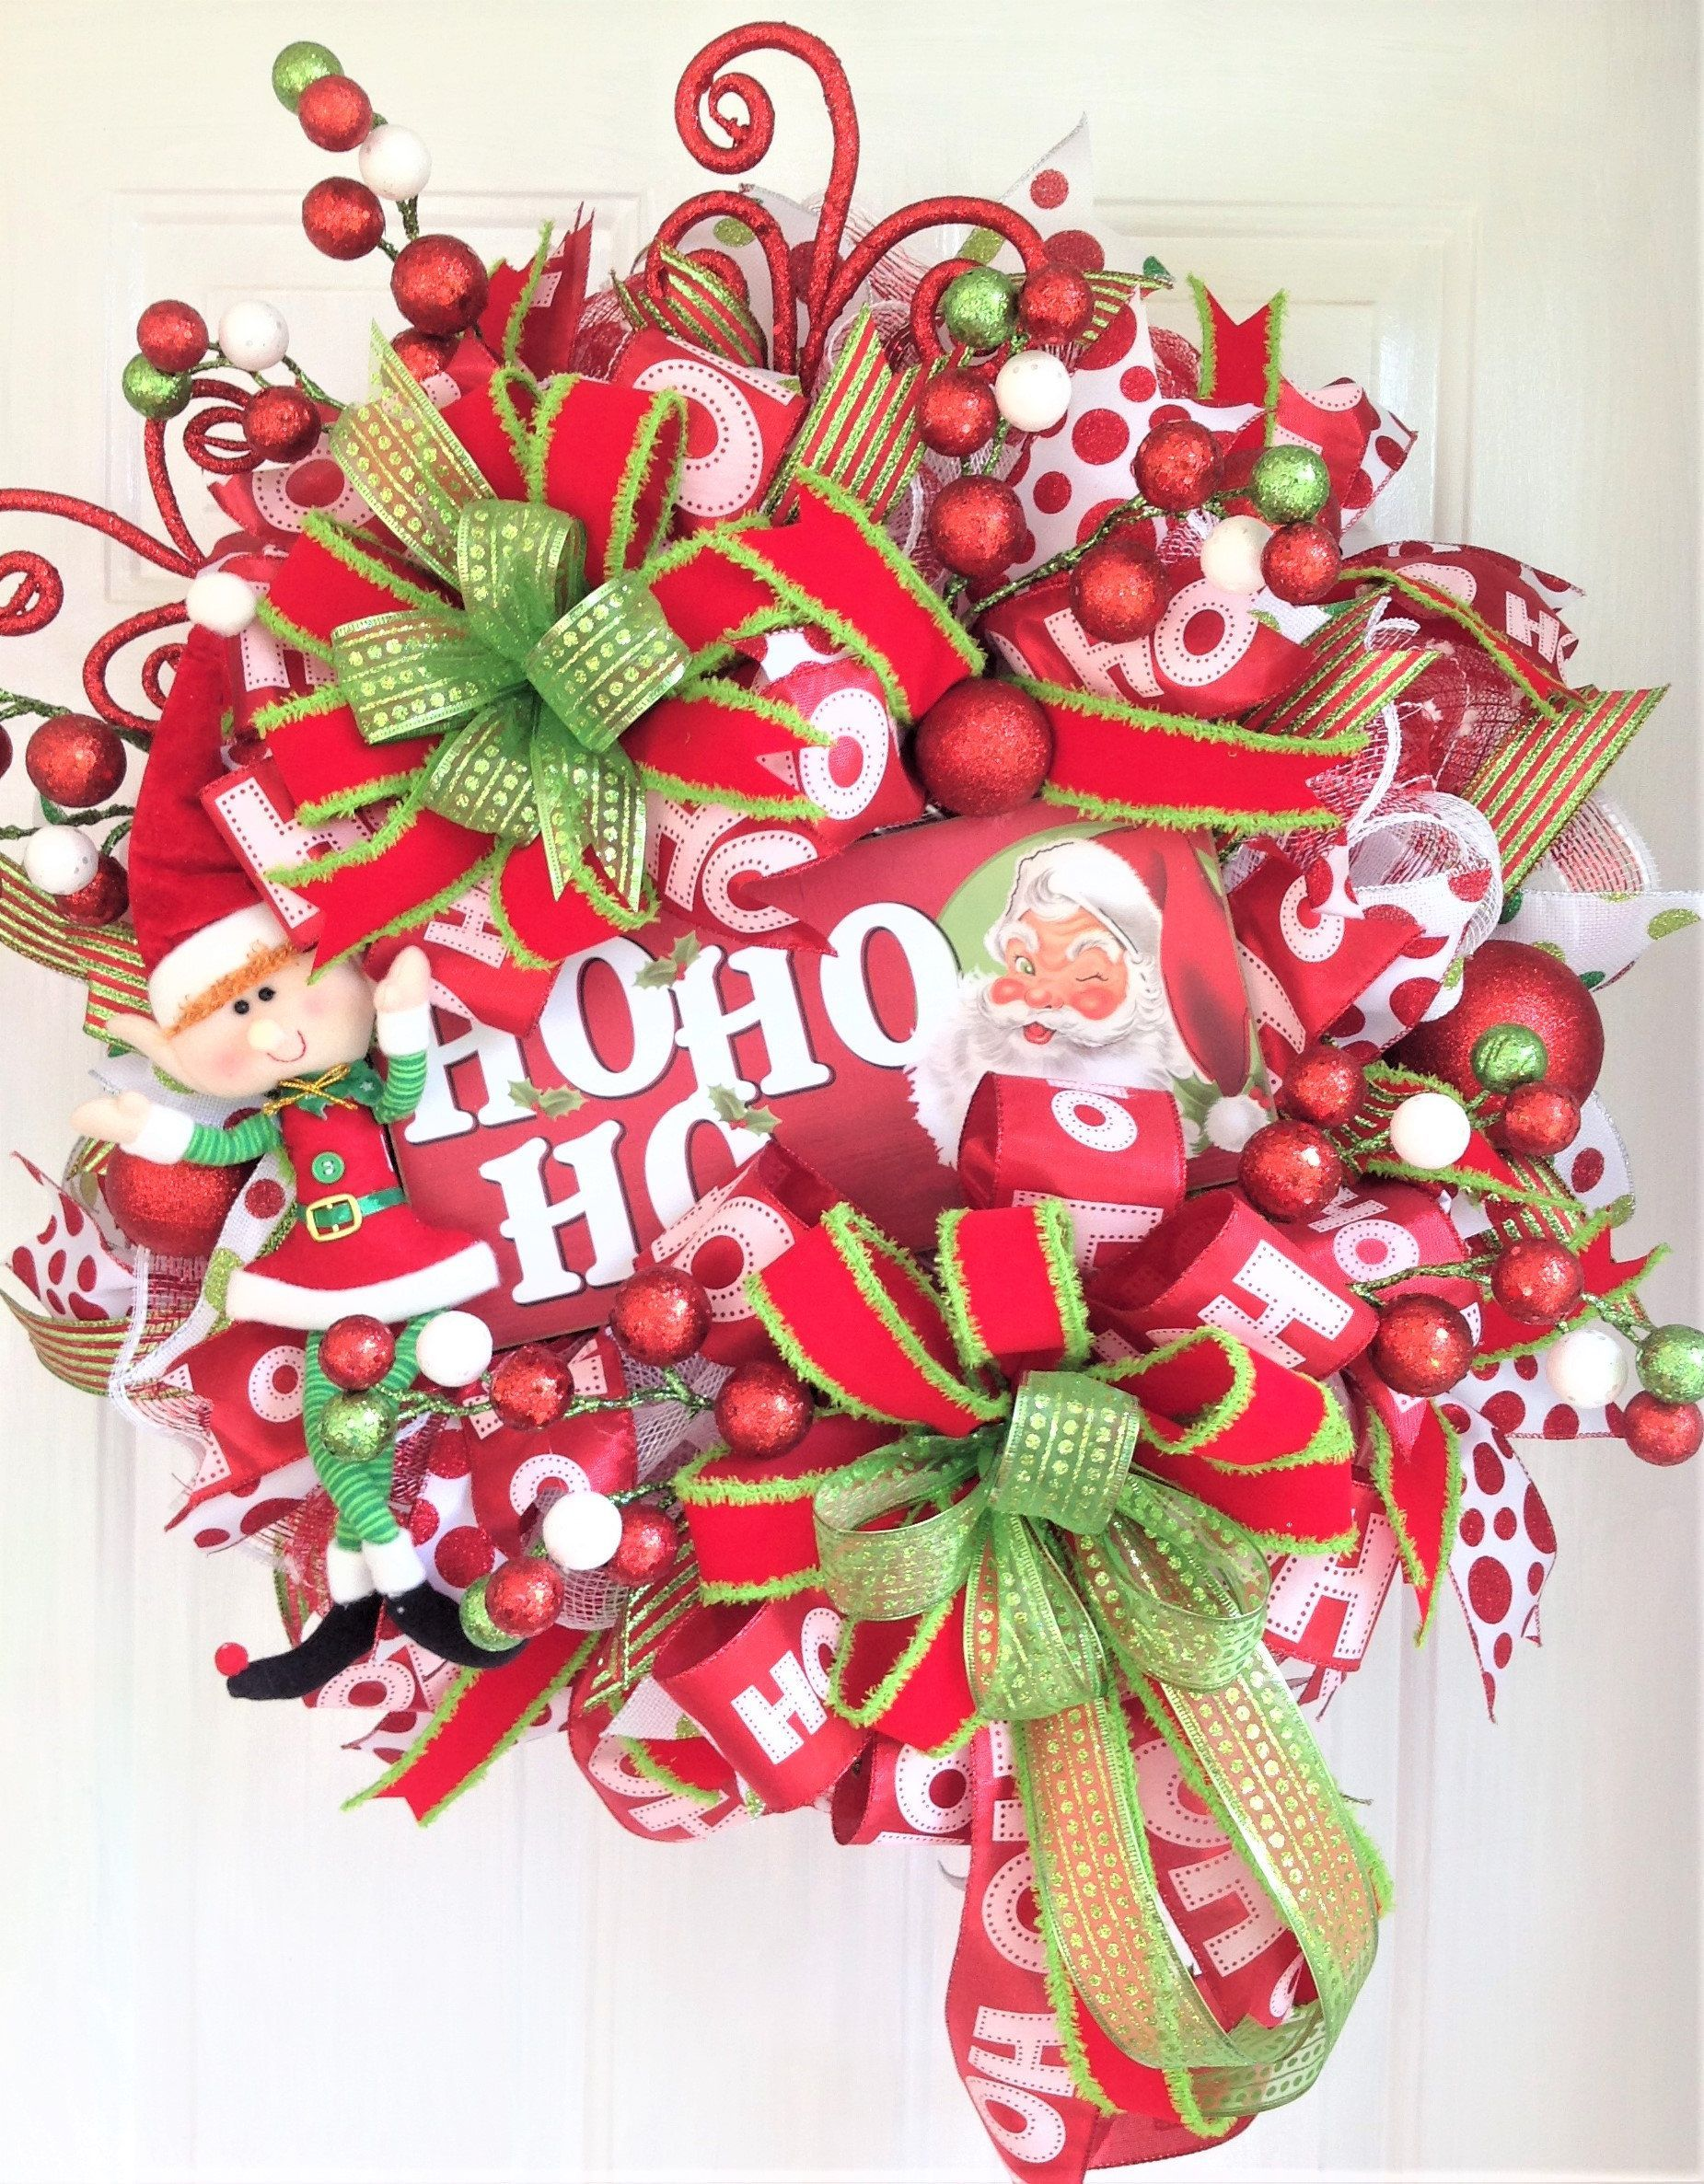 Christmas Wreath For Front Door, Santa Door Wreath, Holiday Wreath With Santa and Elf, Christmas Door Hanger, Christmas Door Decoration #christmasdoordecorationsforwork Christmas Wreath For Front Door, Santa Door Wreath, Holiday Wreath With Santa and Elf, Christmas Door Hanger, Christmas Door Decoration, Holiday Wreath For Front Door, Christmas Wreath With Santa and Elf, Red and Green Christmas Wreath Your door will look stunning this Christmas season with this beautiful holiday wreath designed #halloweendoordecorations